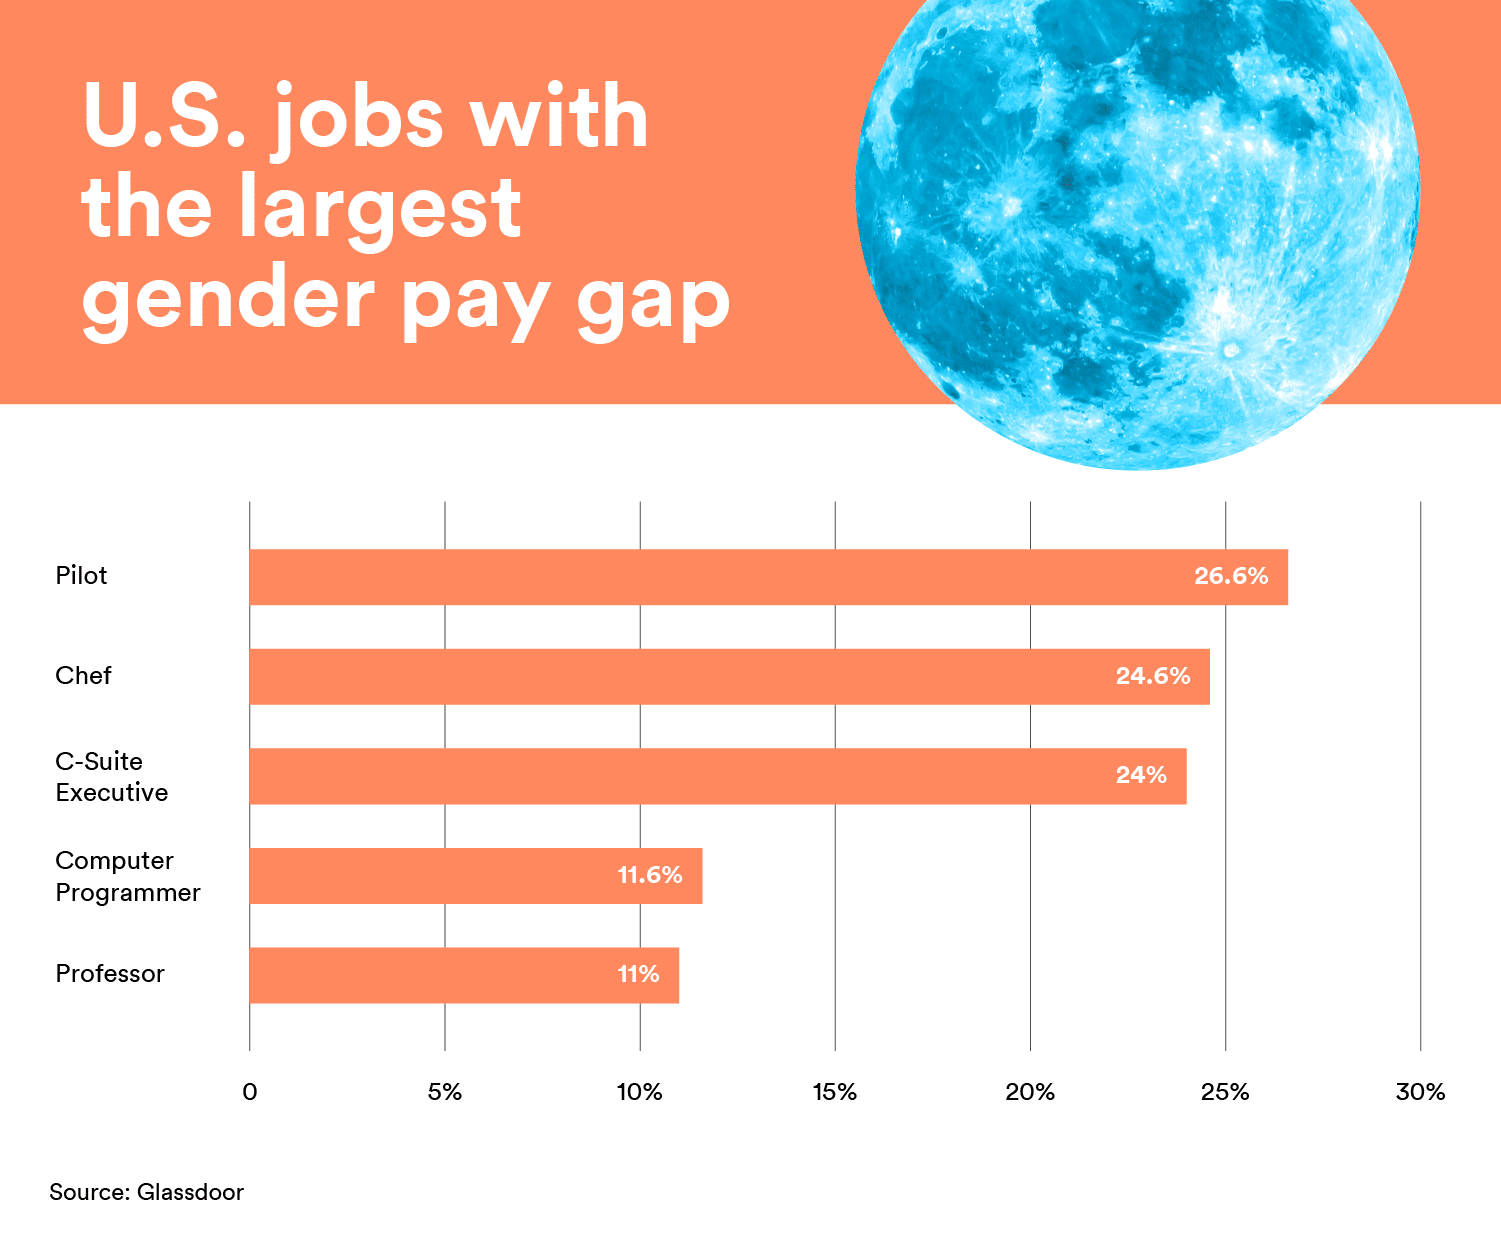 jobs with the largest gender pay gap